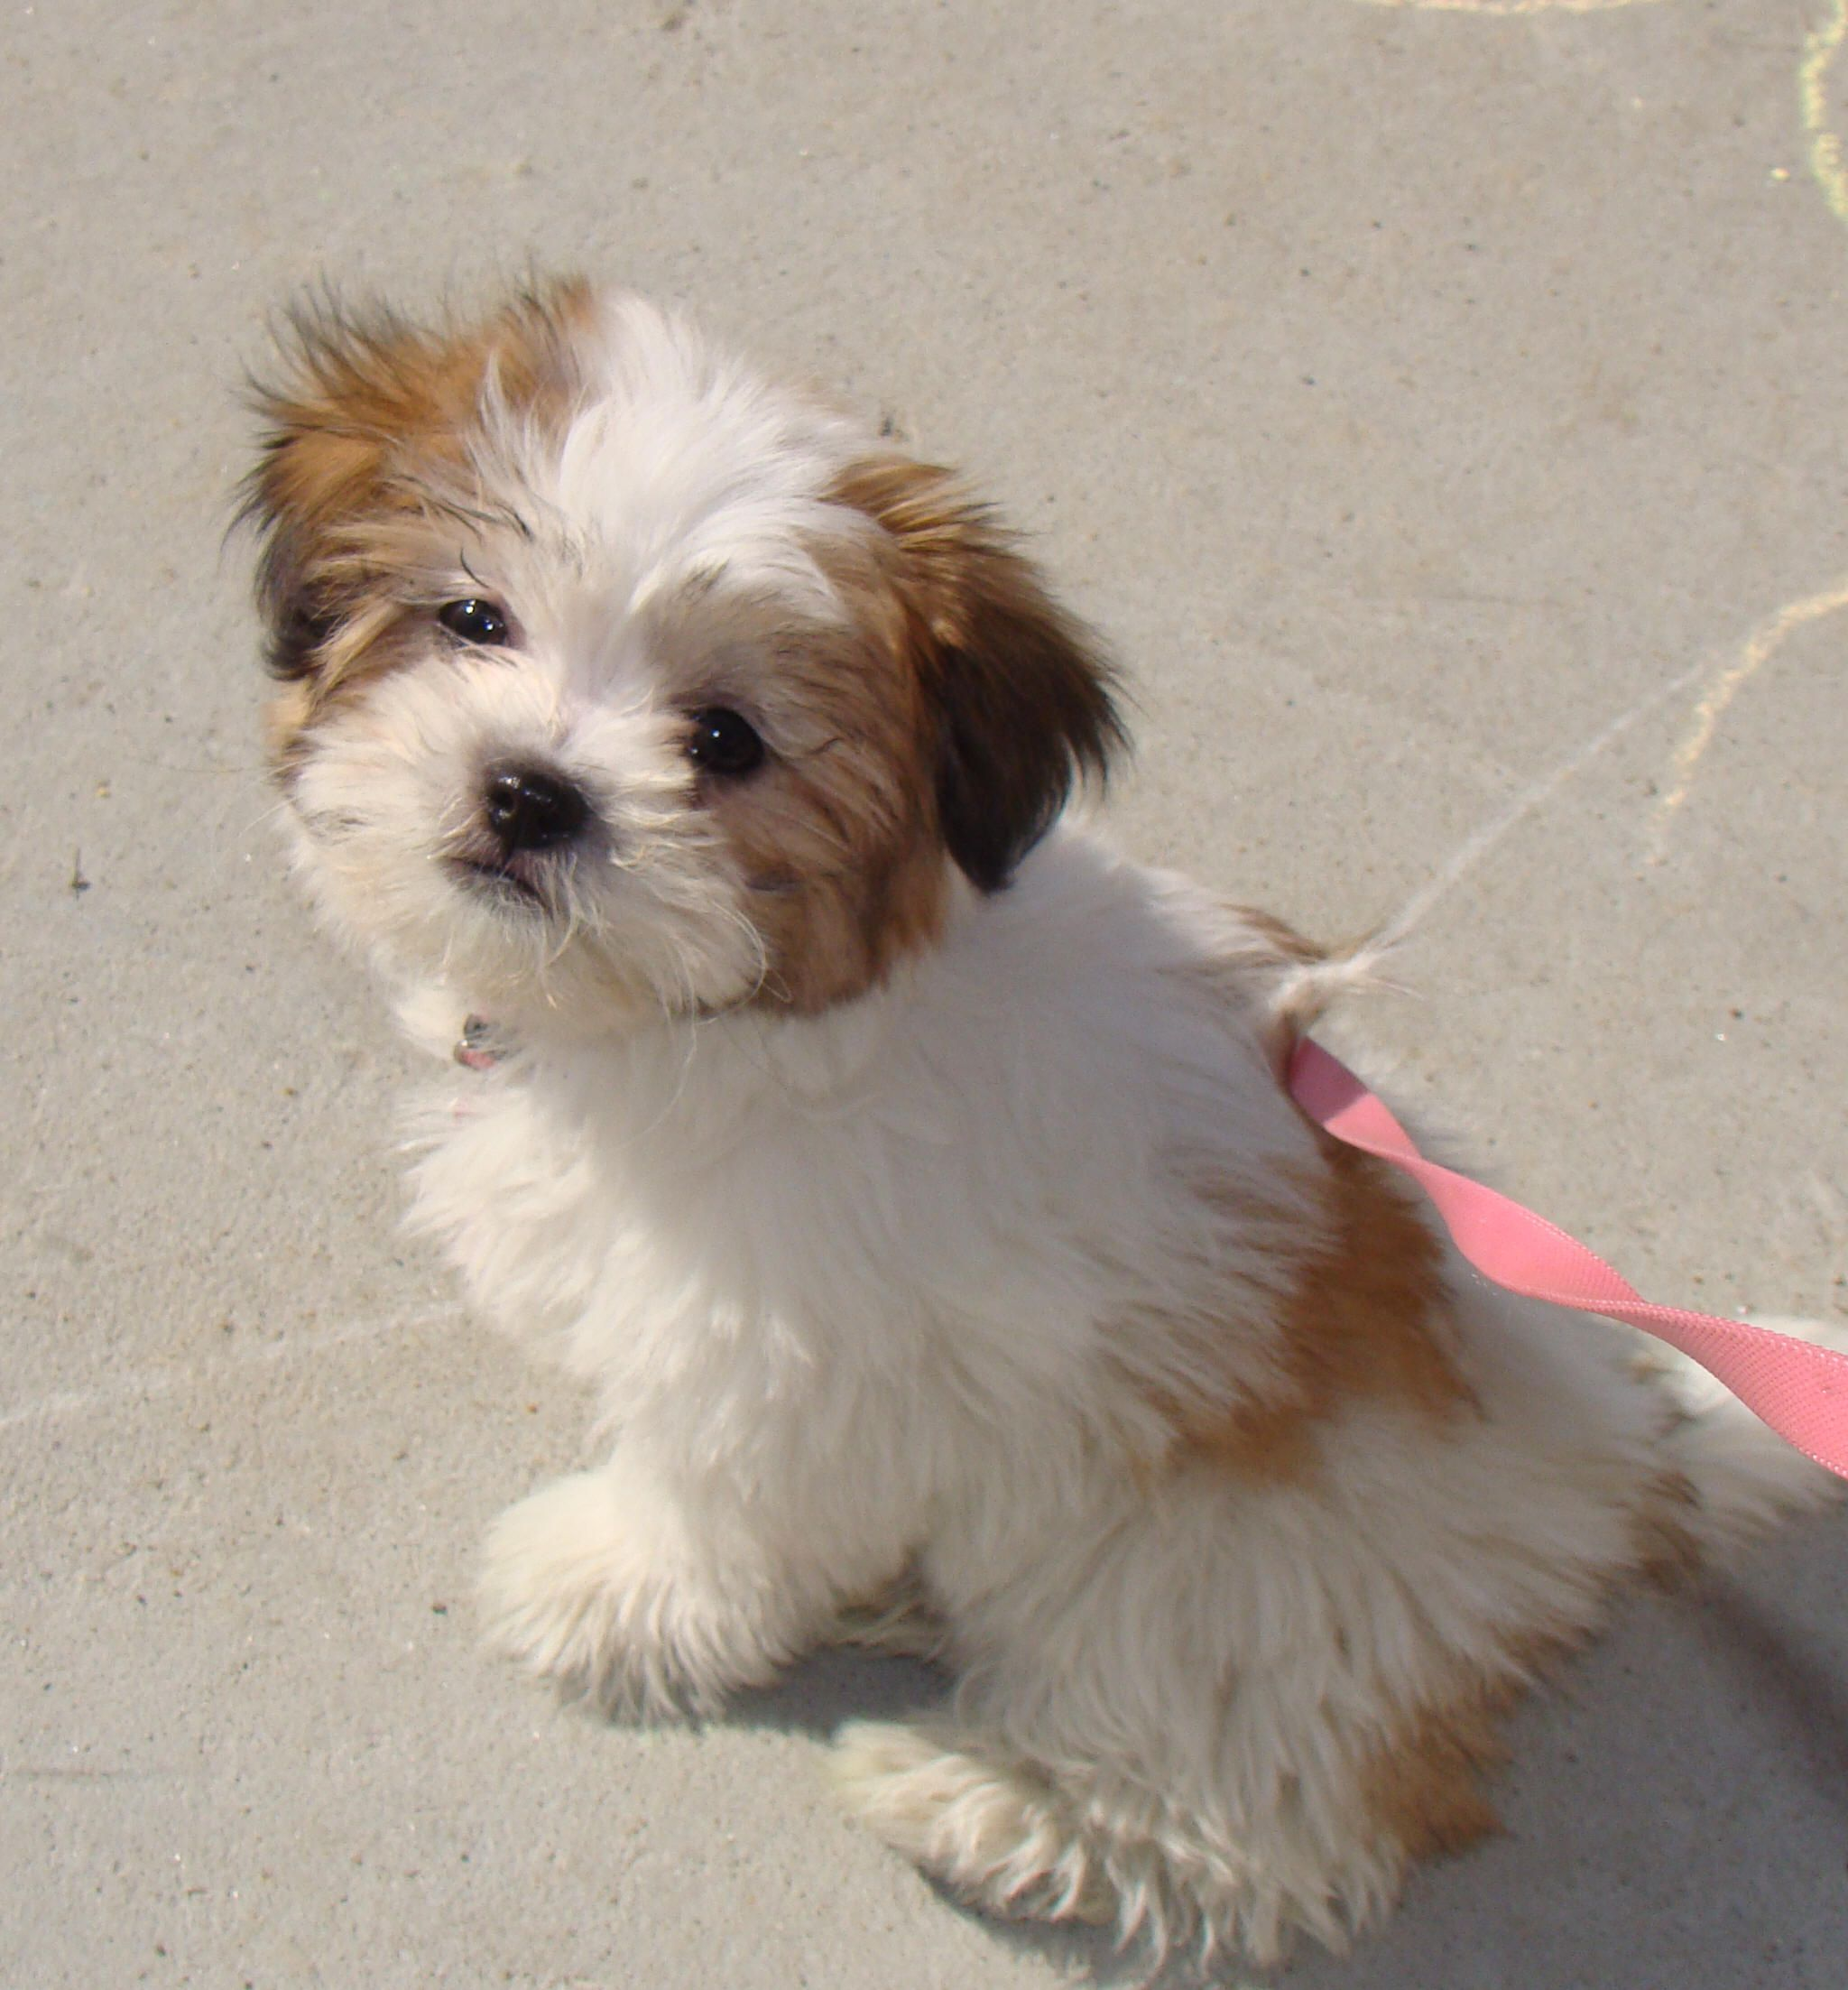 Shichon puppy (Shih'tzu+Bichon Frise) So Cute